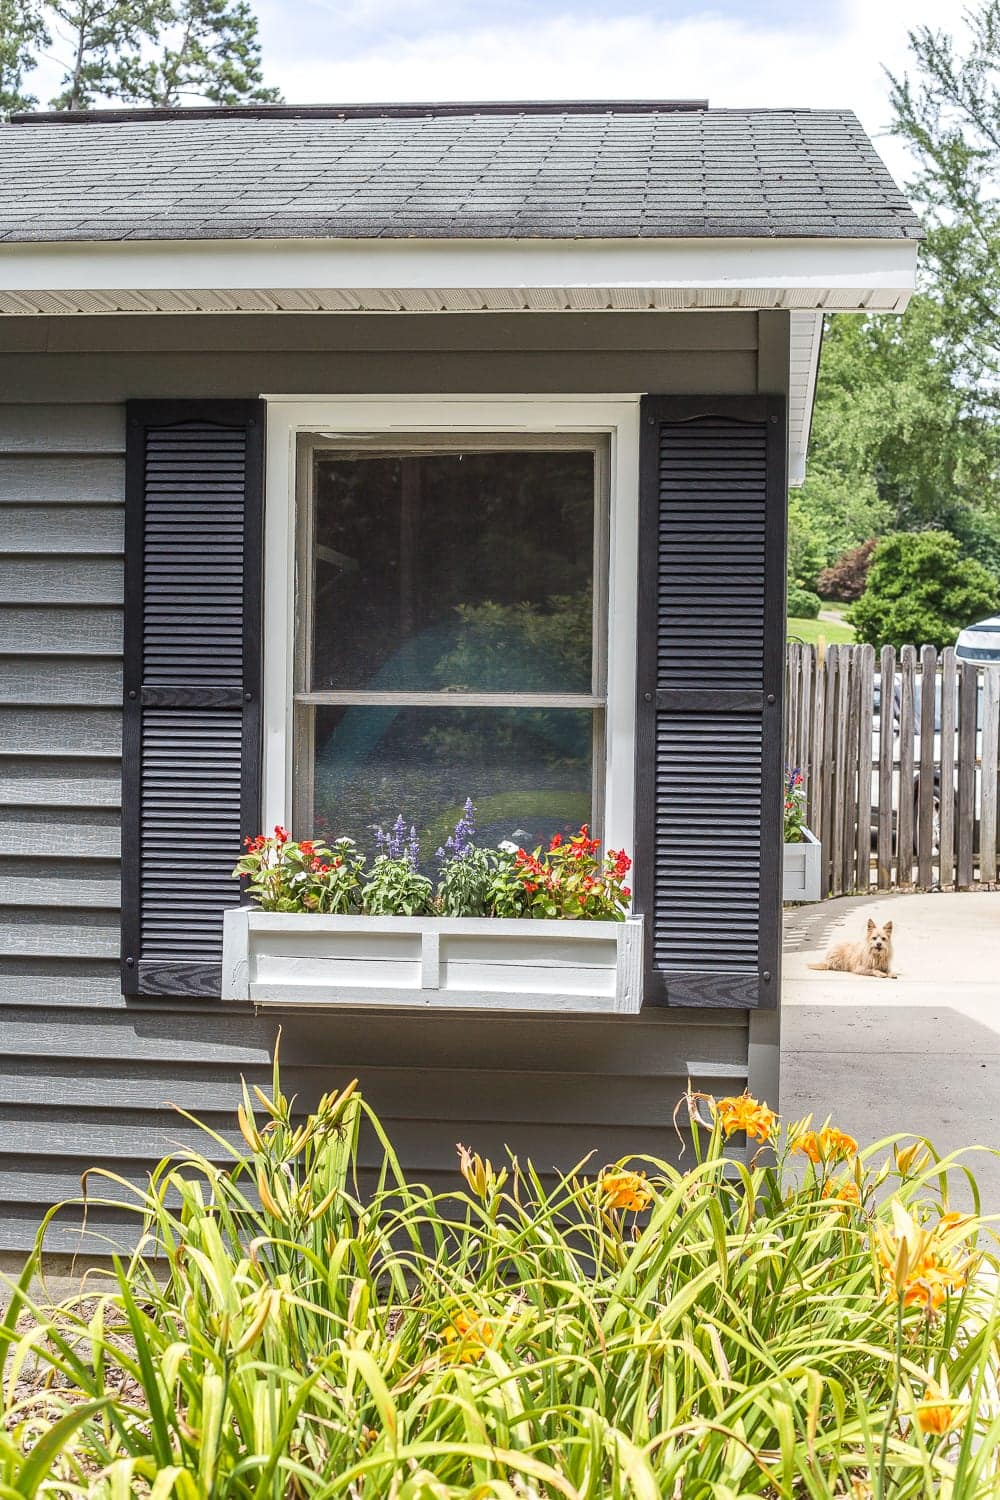 How to paint vinyl siding & DIY window box from scrap wood | Sherwin Williams Pepper Shake charcoal gray exterior